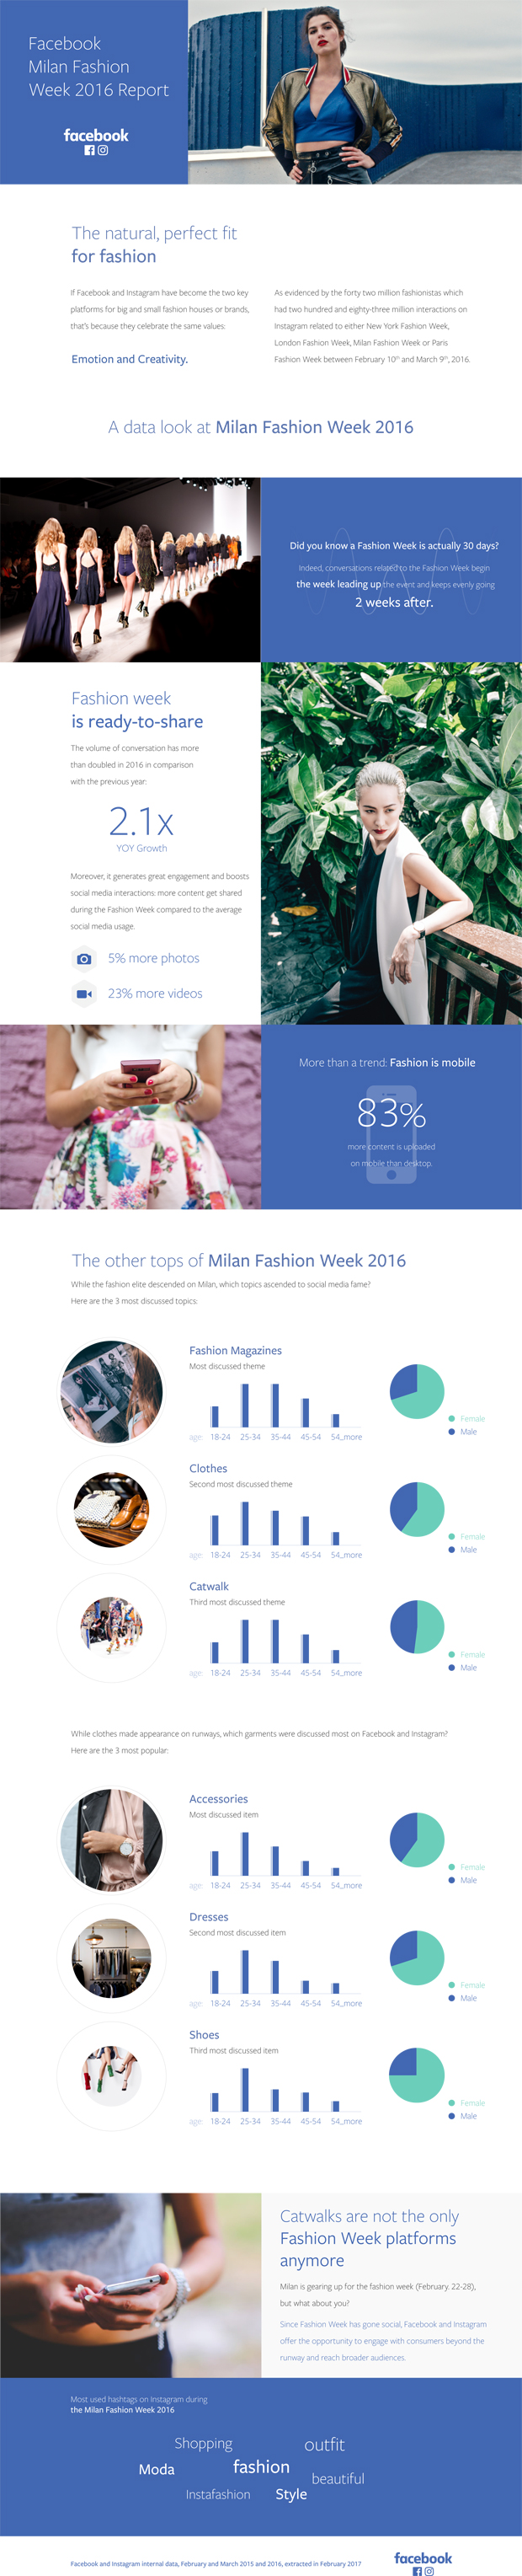 Facebook_Milan-Fashion-Week_IT